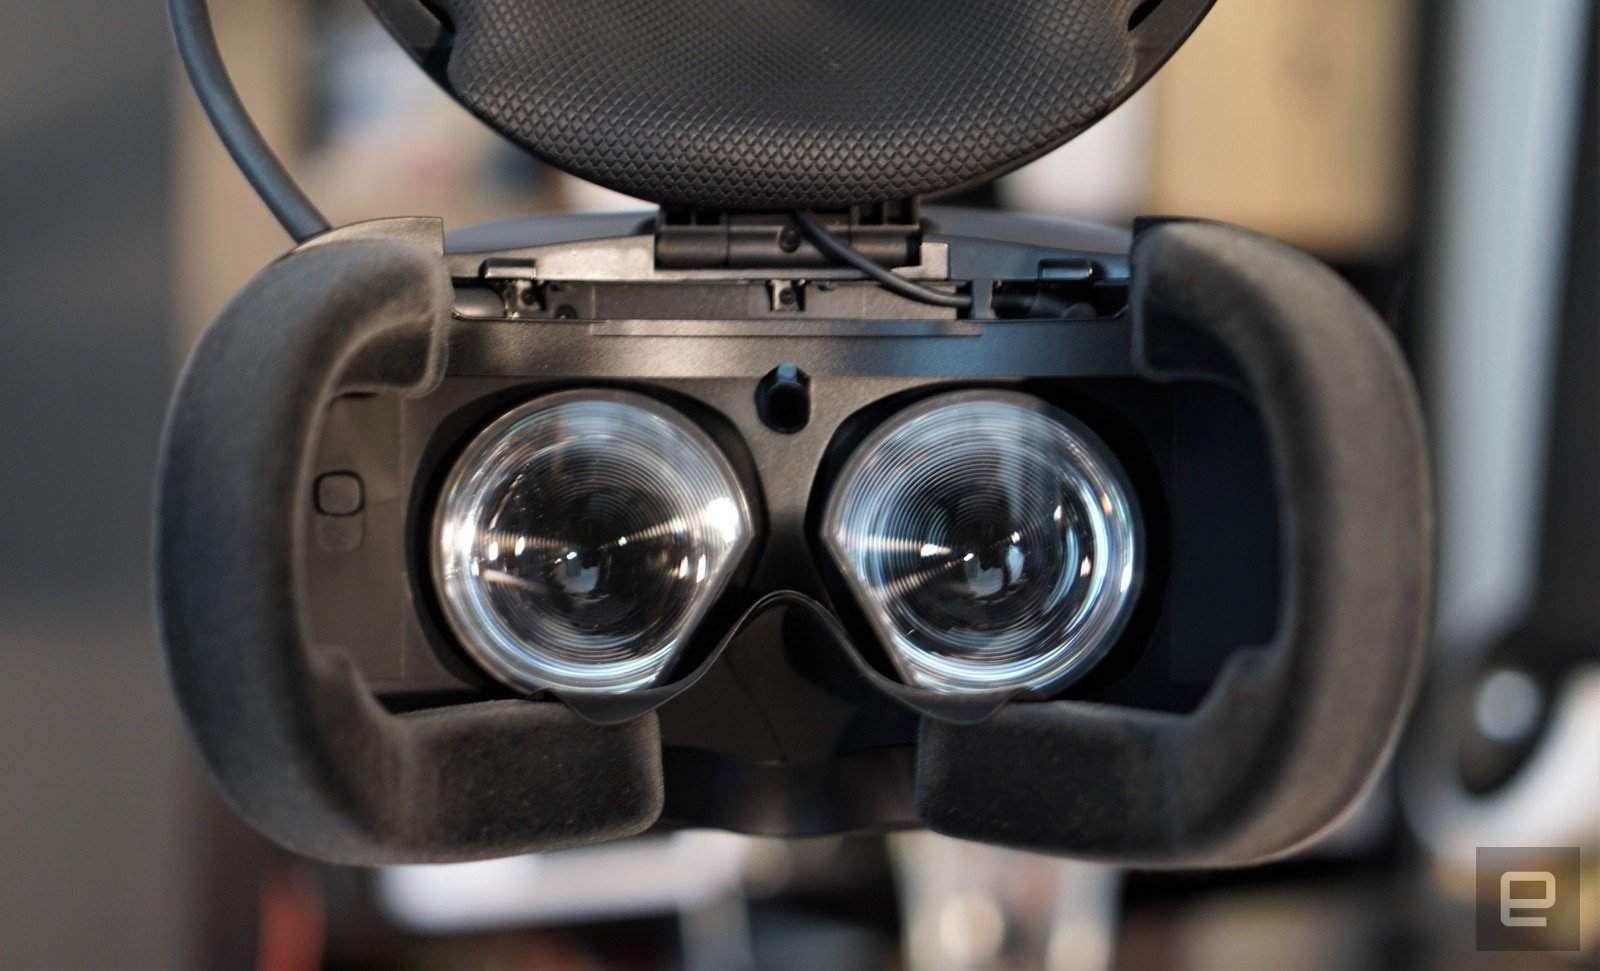 HTC Vive Cosmos review: Too late, too expensive | DeviceDaily.com